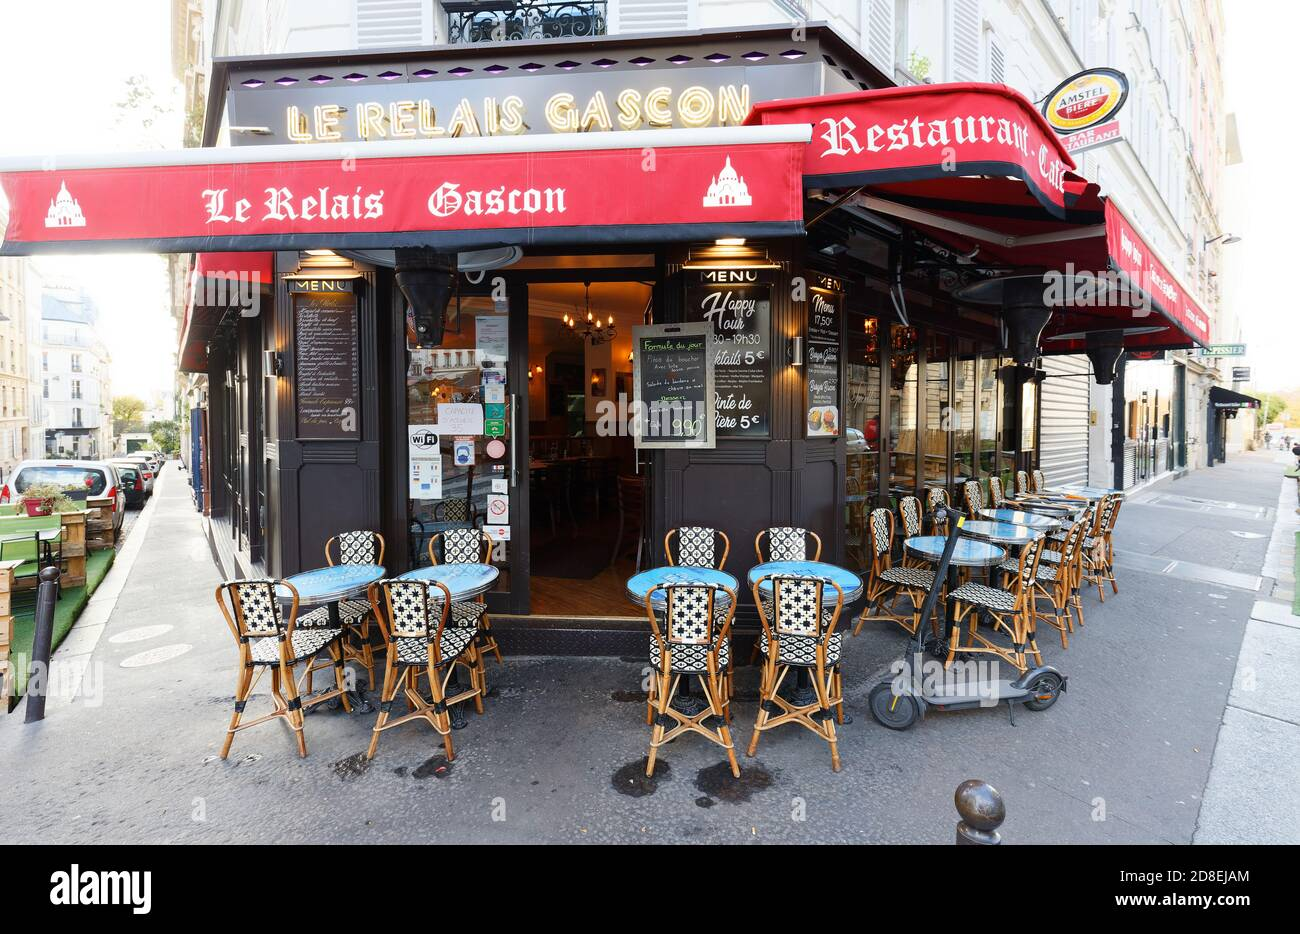 The traditional French restaurant Le Relais Gascon , Montmartre district of Paris, France. Stock Photo